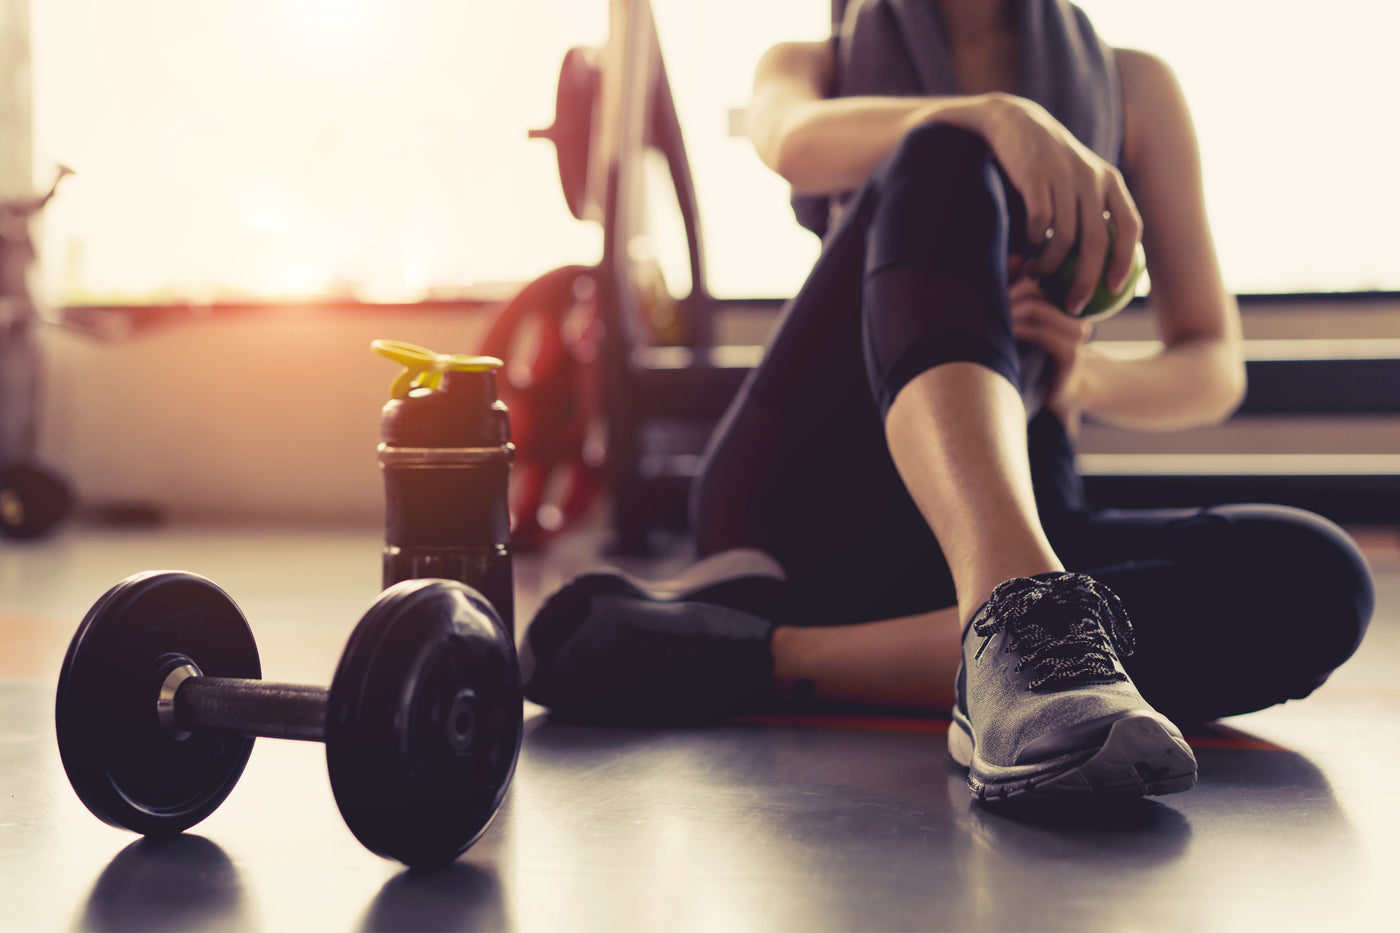 Discussion on this topic: Your Top Exercise Excuses, Busted, your-top-exercise-excuses-busted/